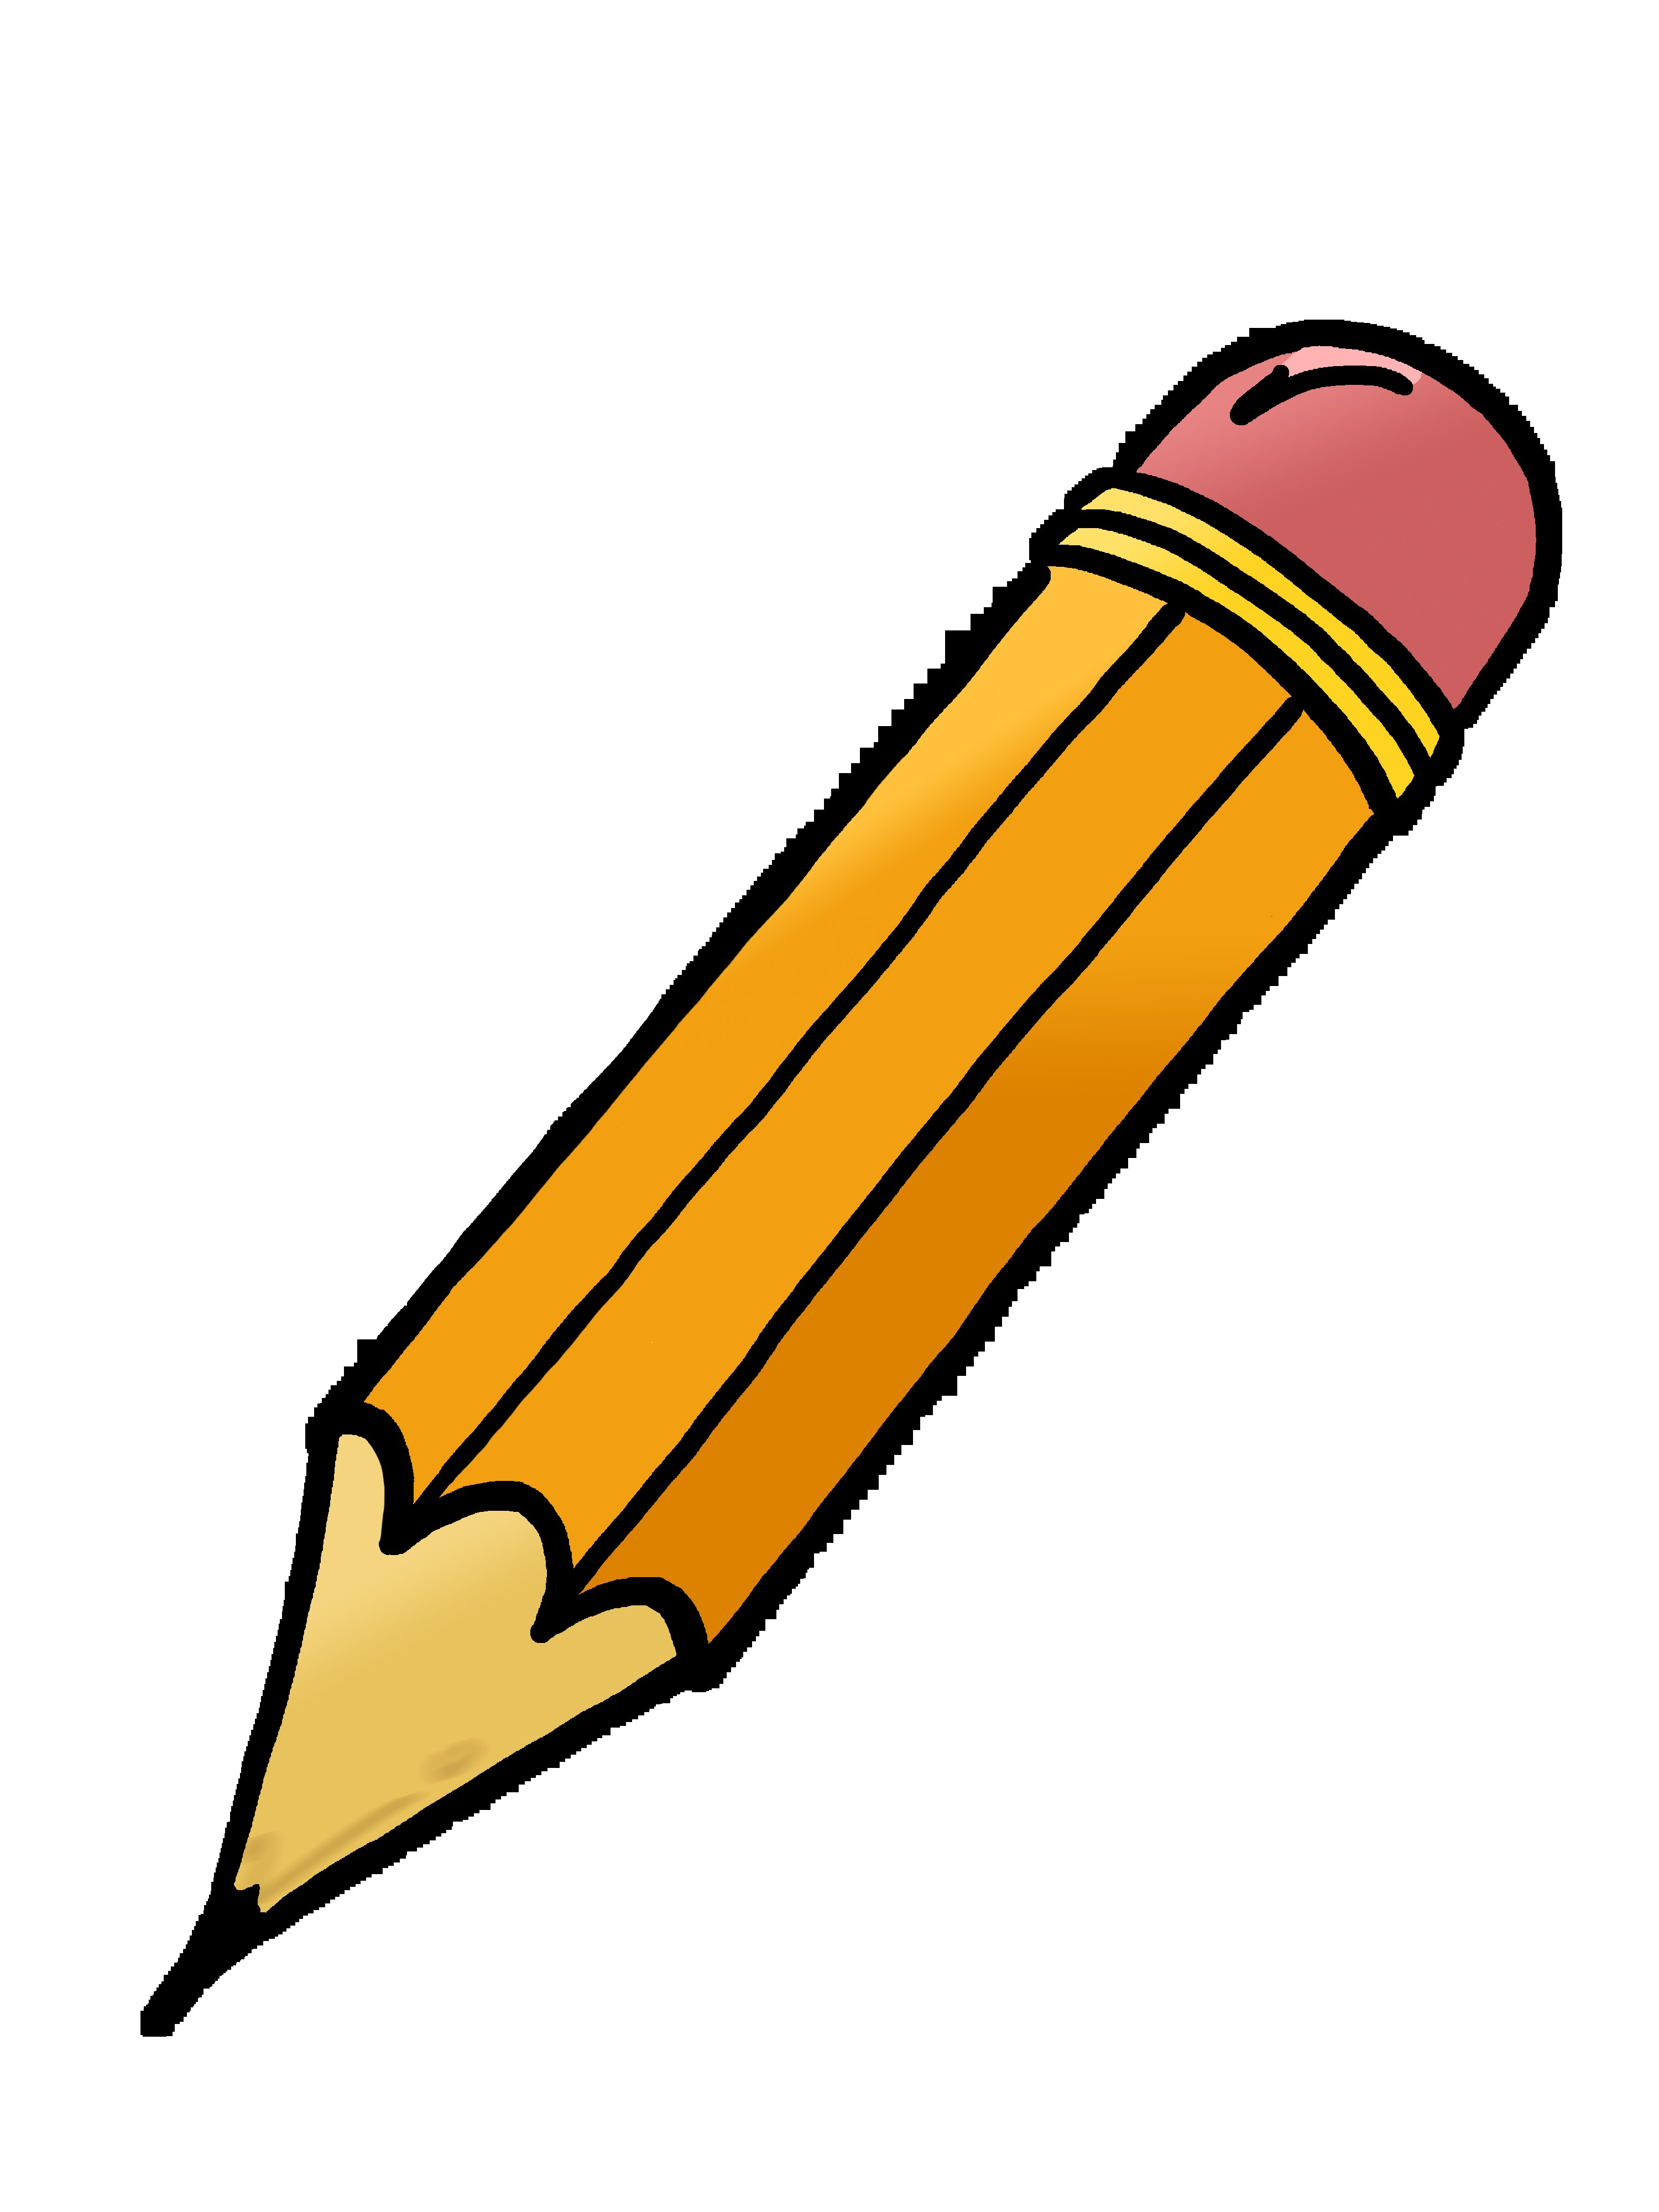 Horizontal Pencil Clip Art.